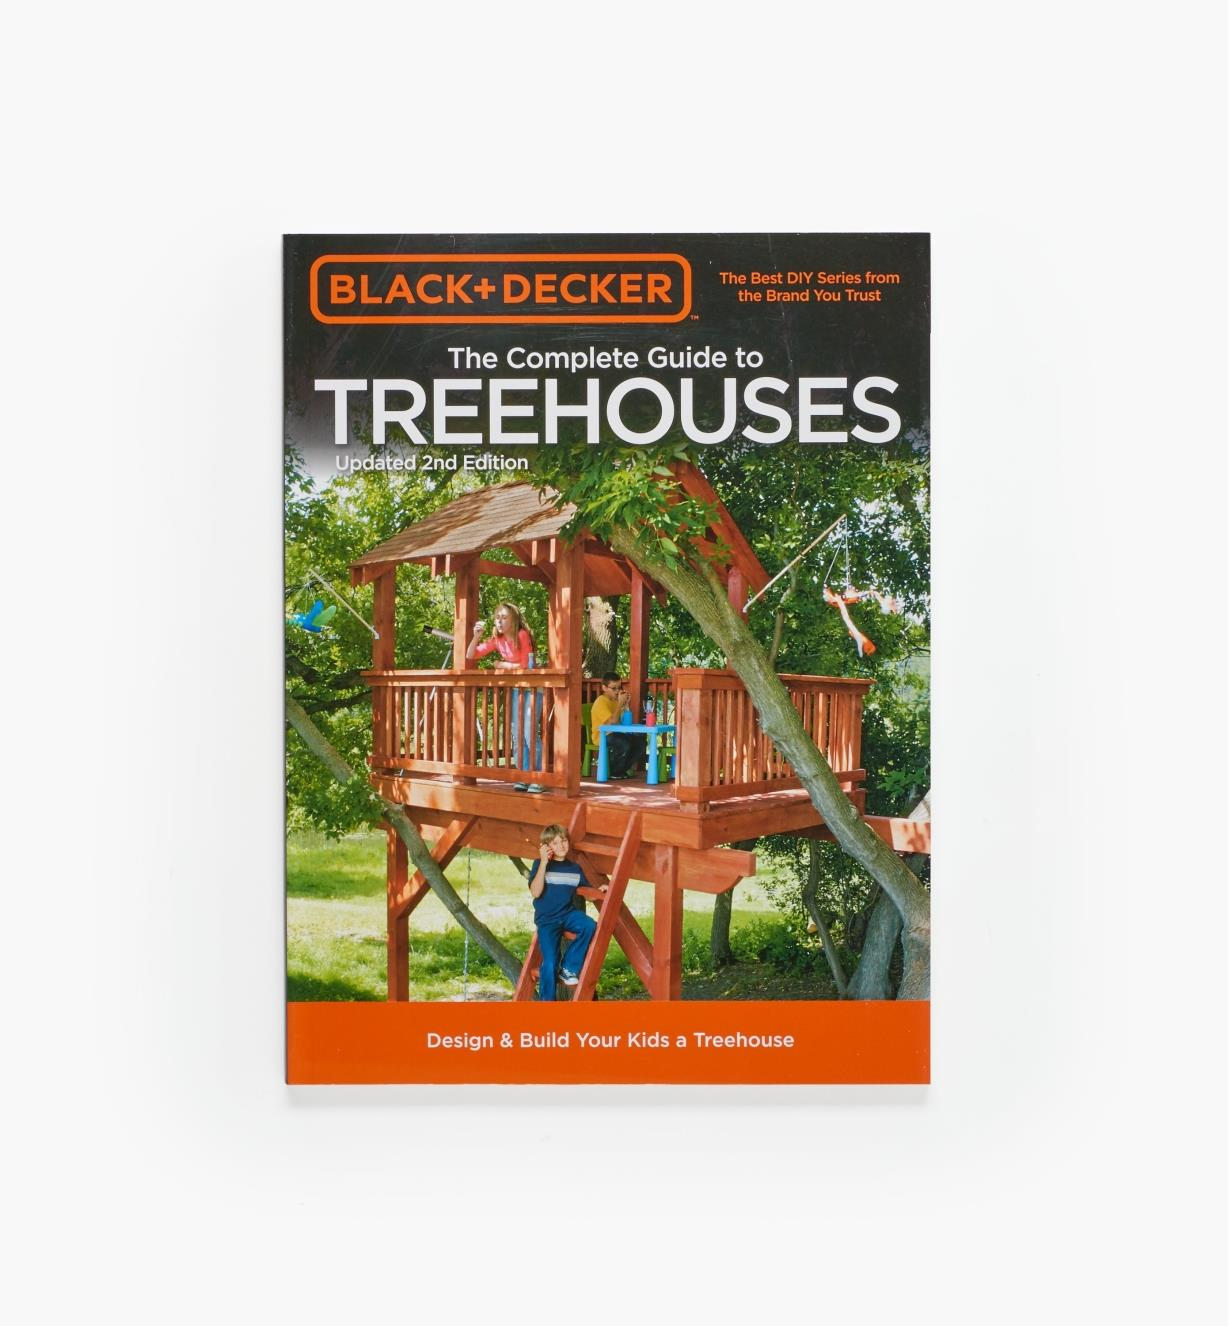 26L3012 - The Complete Guide to Treehouses, 2nd Edition